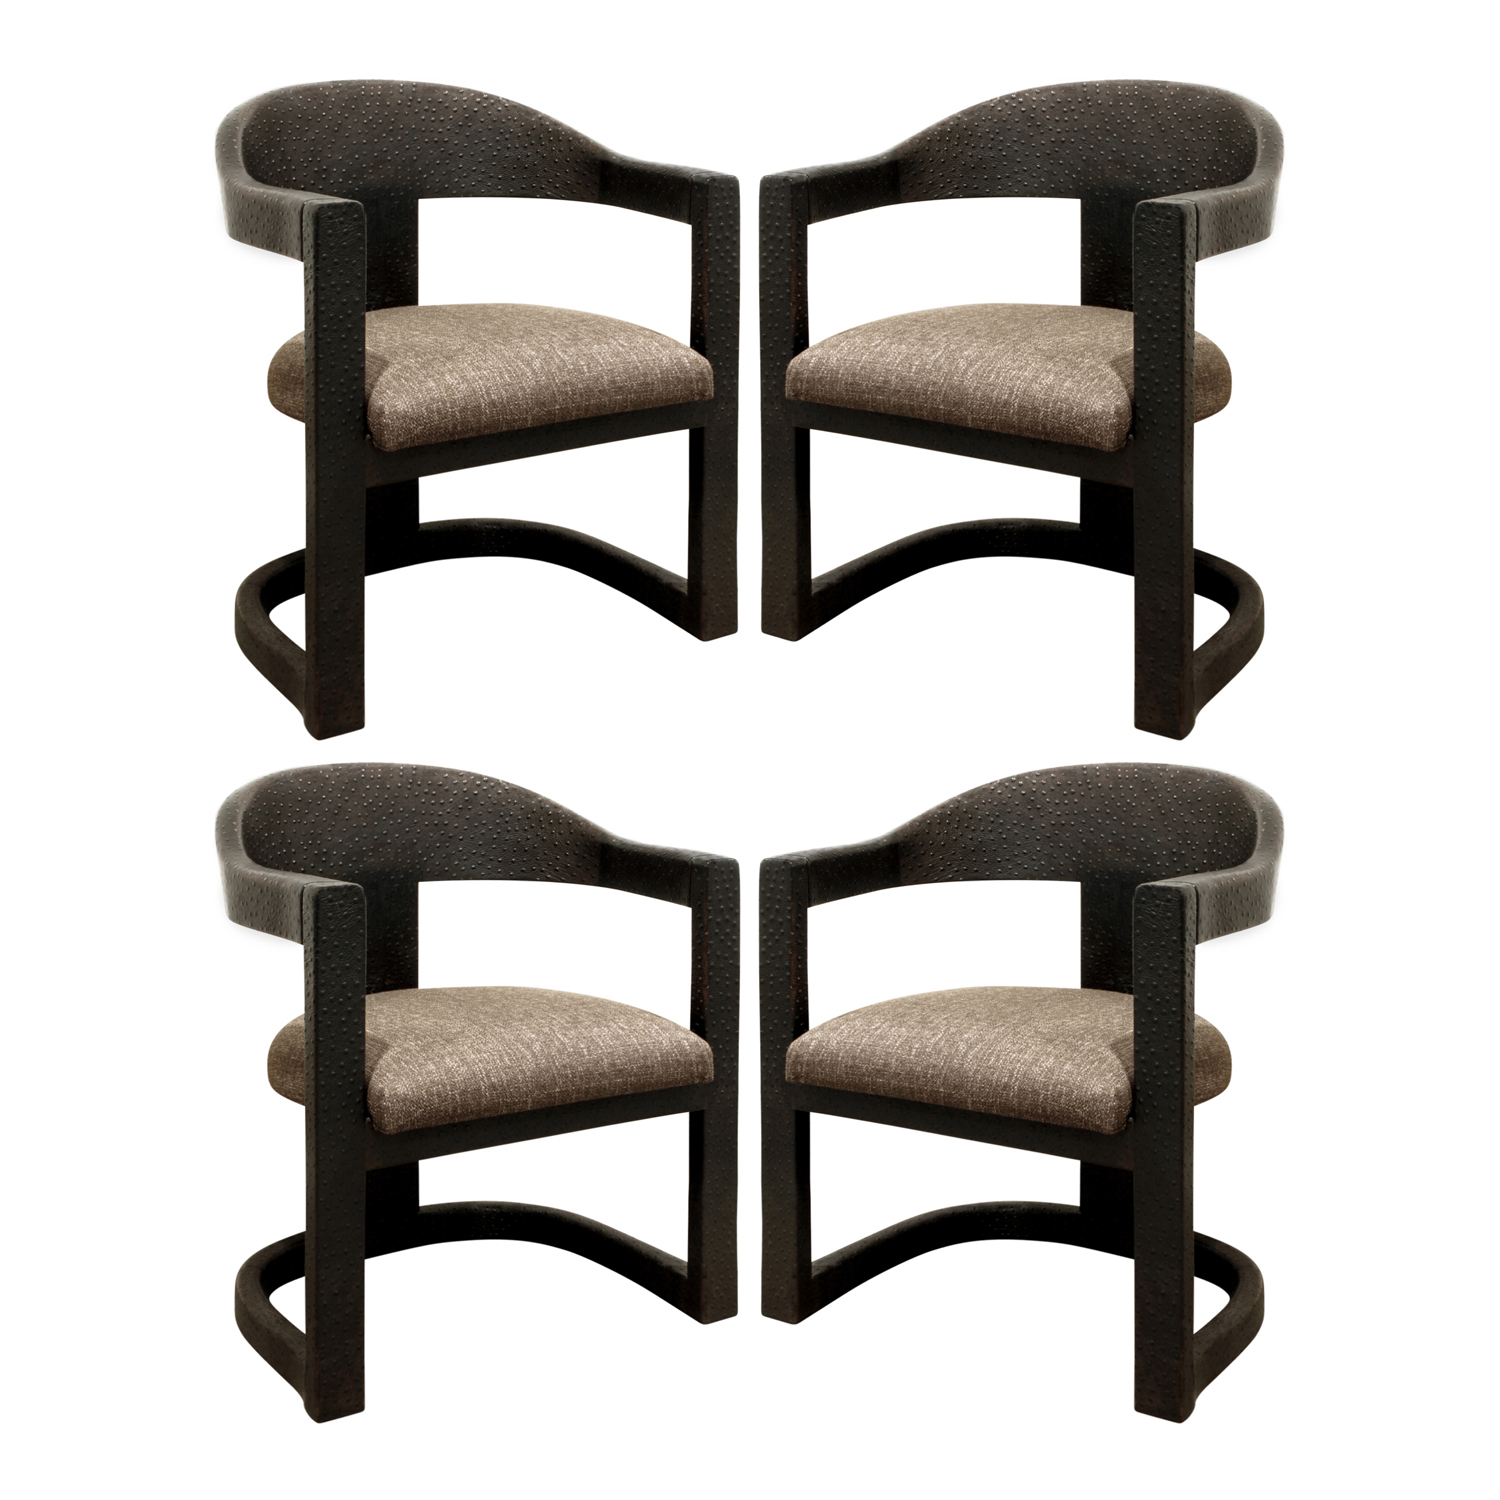 Springer 180 Onassis set4 emb ostr diningchairs184 main.jpg